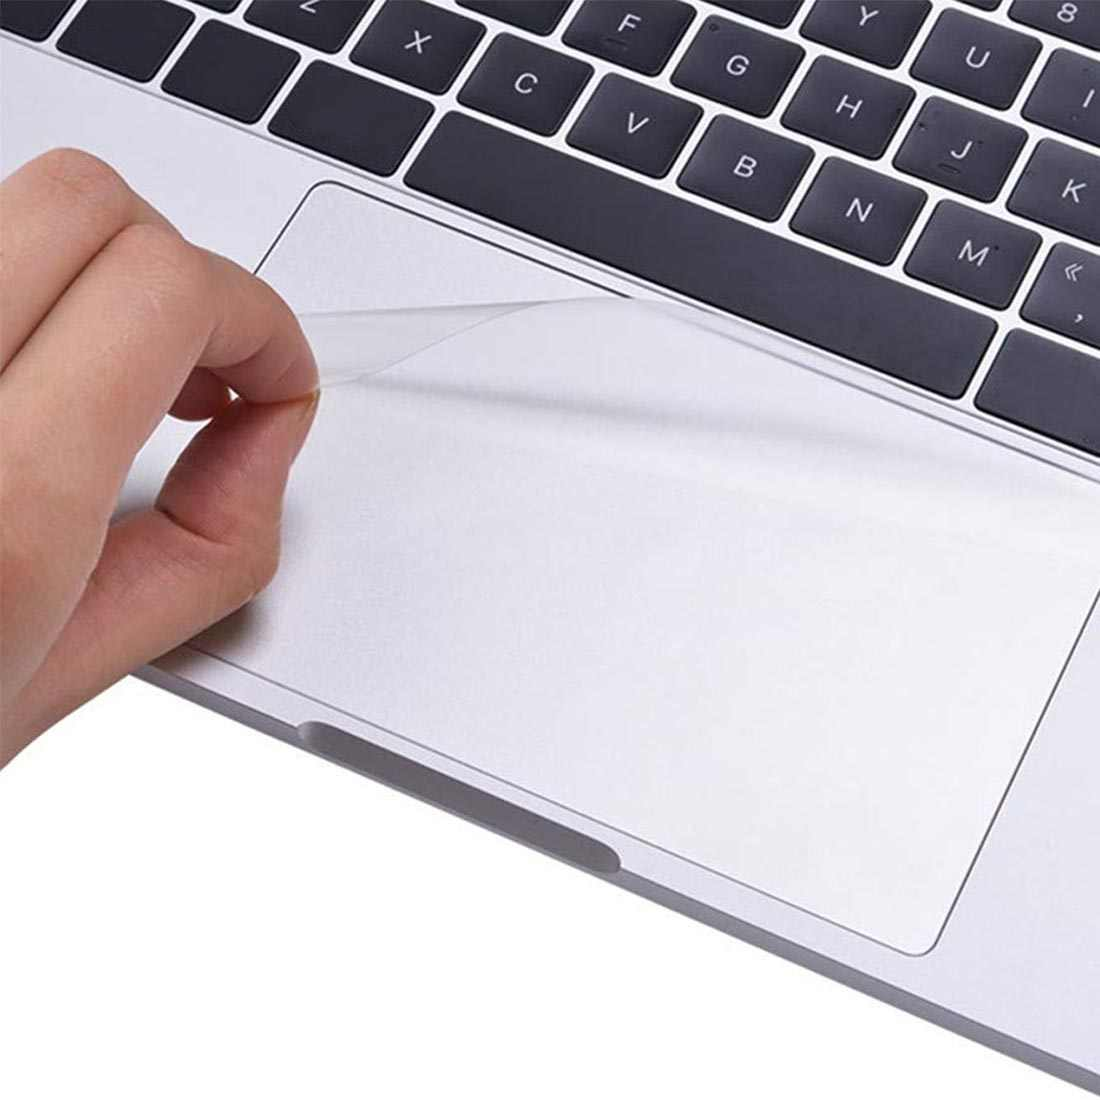 TouchPad Film Pelindung Stiker Pelindung untuk Apple Macbook Air Pro 13.3 15 Retina Touch Bar 12 Touch Pad Laptop aksesoris